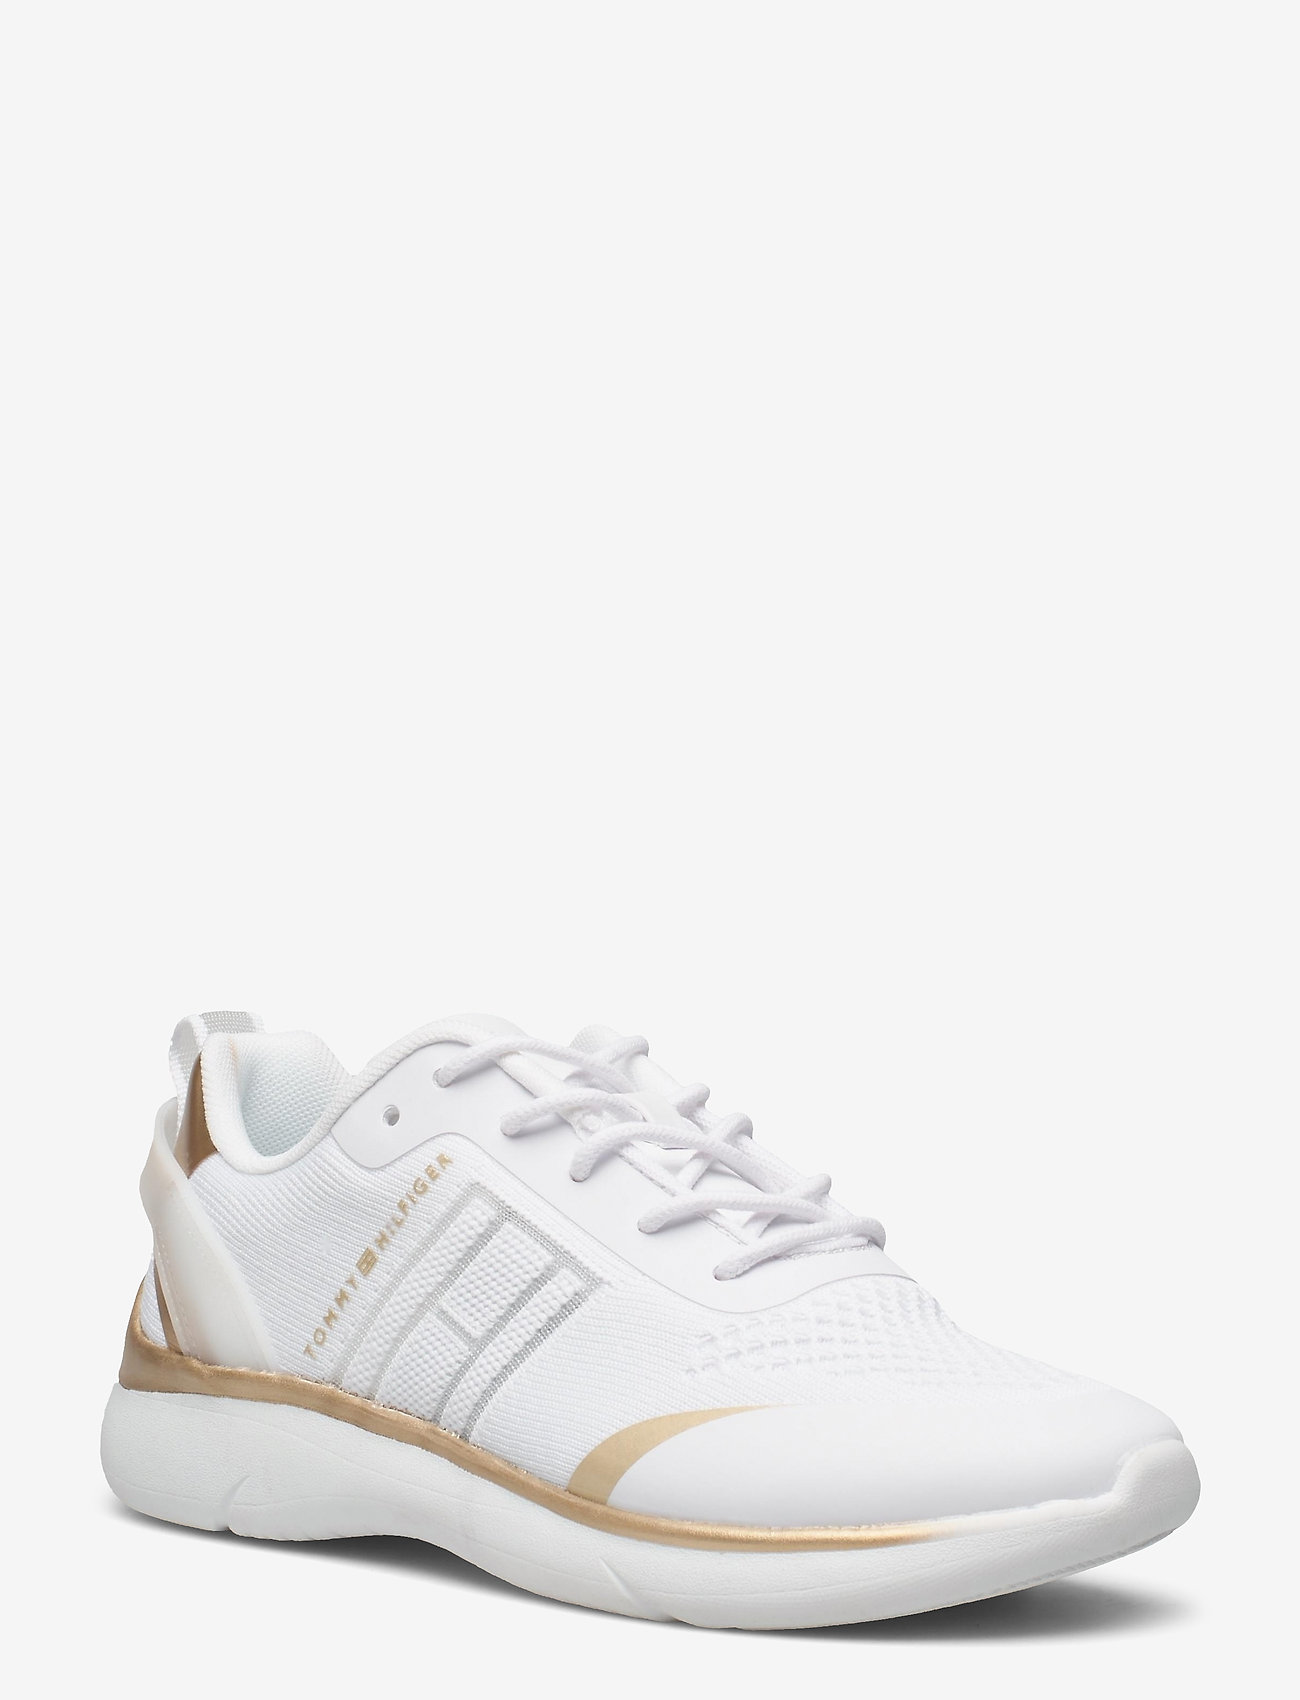 Tommy Hilfiger - KNITTED LIGHT SNEAKER - low top sneakers - white - 0